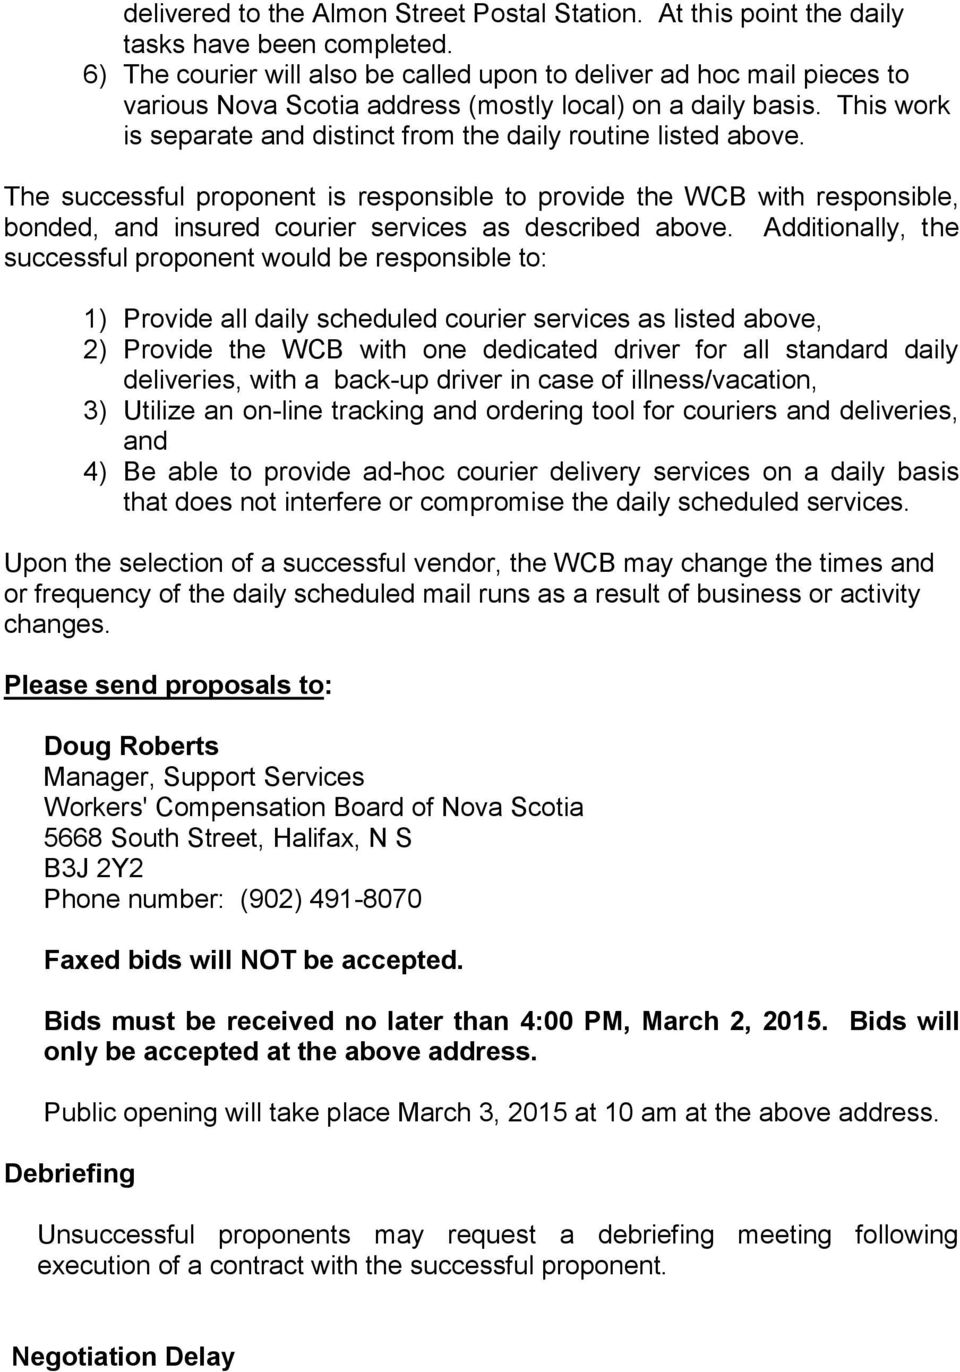 Workers' Compensation Board of NS Daily Local Courier Services